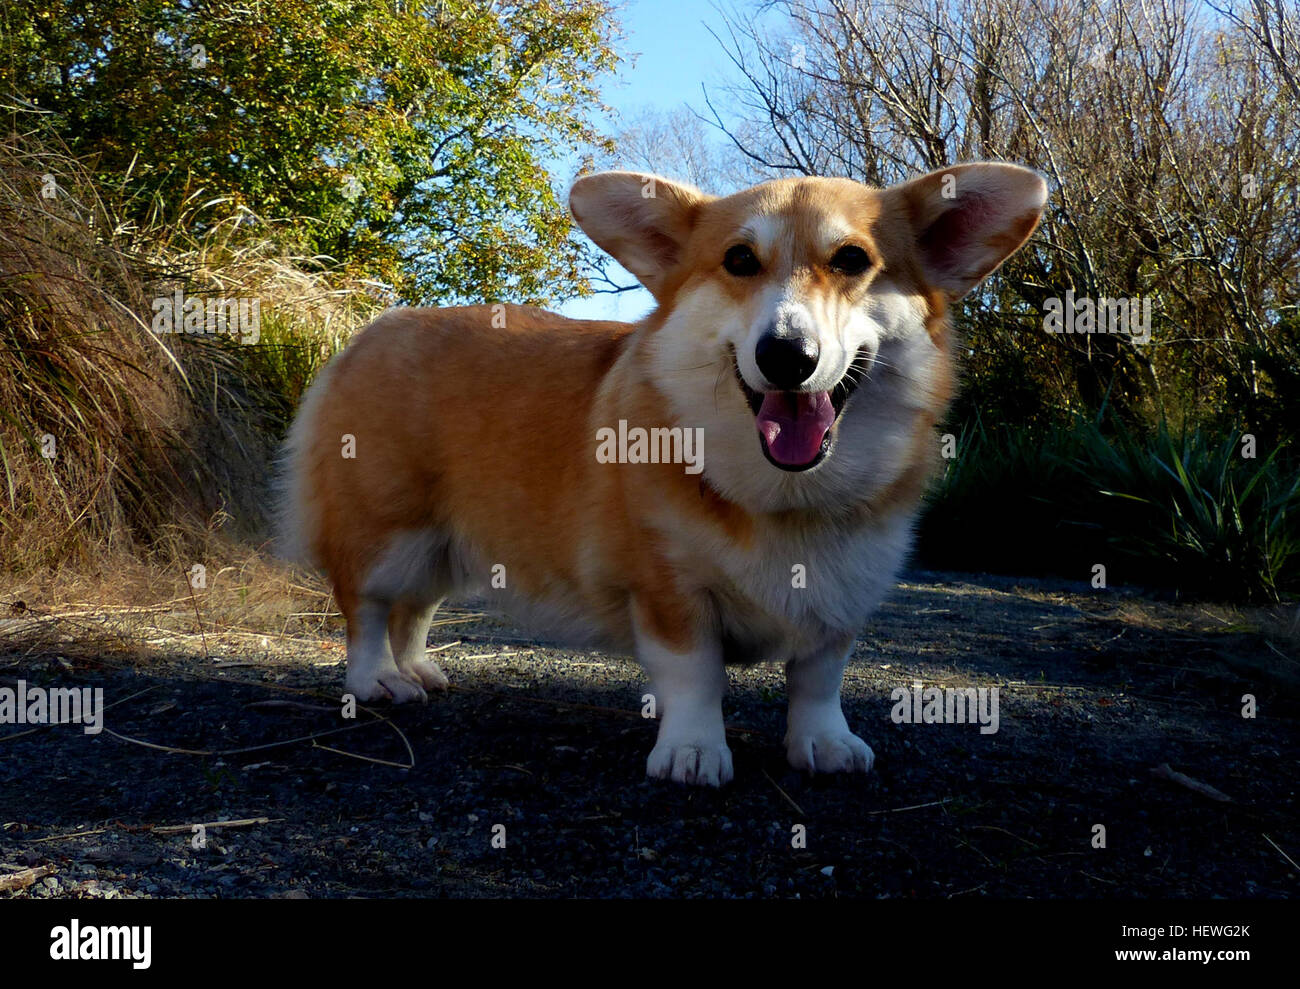 The Pembroke Welsh Corgi  is a herding dog breed, which originated in Pembrokeshire, Wales. It is one of two breeds known as Welsh Corgi: the other is the Cardigan Welsh Corgi. The Pembroke Welsh Corgi is the younger of the two Corgi breeds and is a separate and distinct breed from the Cardigan.[1] The corgi is one of the smallest dogs in the Herding Group. Pembroke Welsh Corgis are famed for being the preferred breed of Queen Elizabeth II, who has owned more than 30 during her reign. These dogs have been favoured by British royalty for more than seventy years. Stock Photo